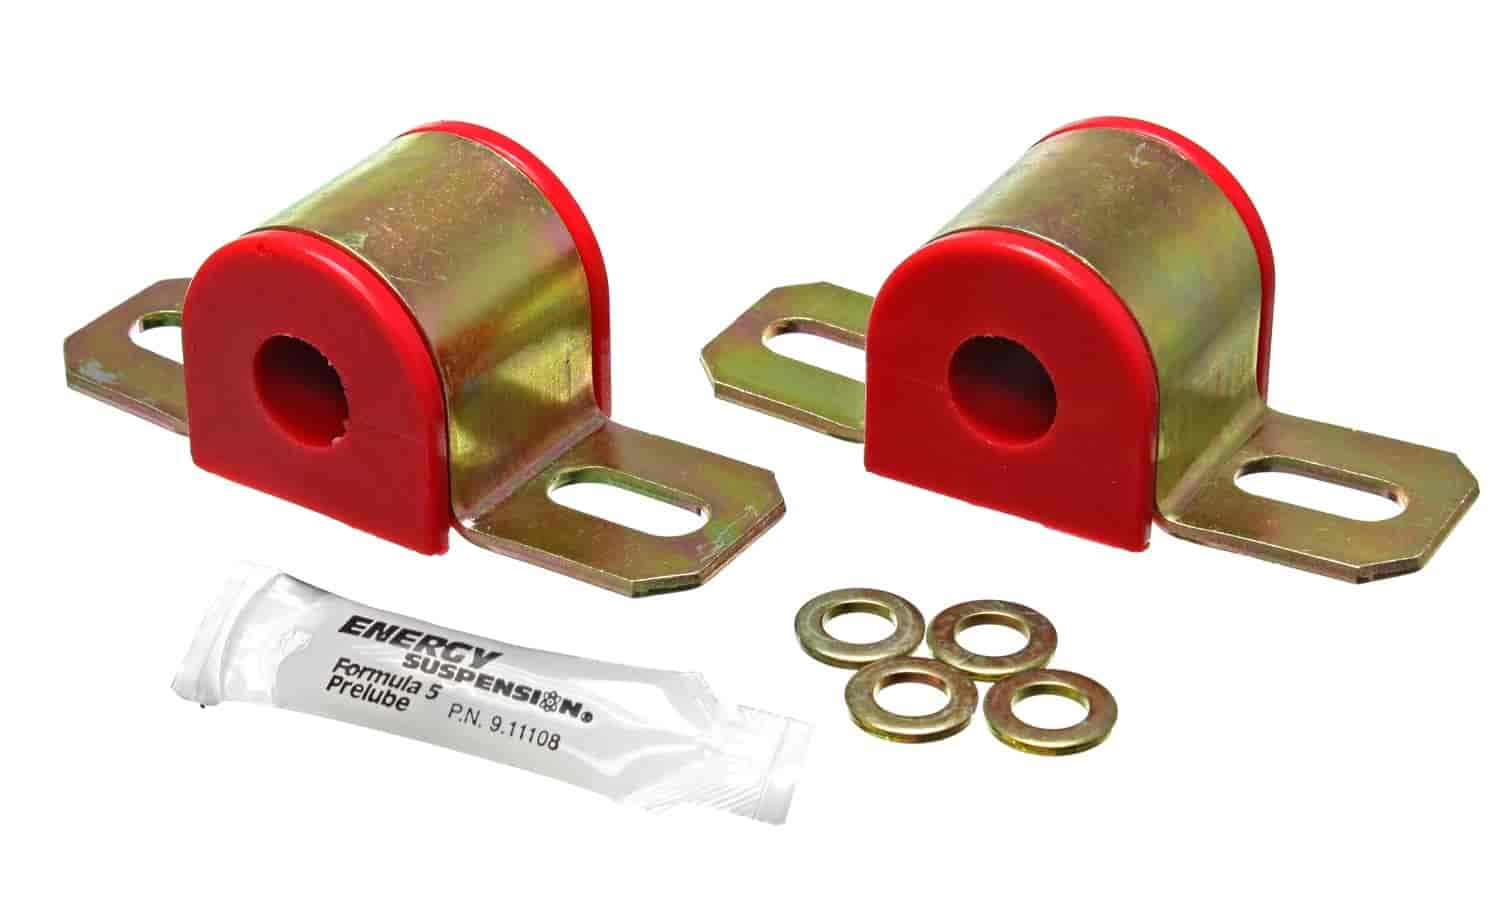 Energy Suspension 9-5105R - Energy Suspension Universal Non-Greaseable Sway Bar Bushings